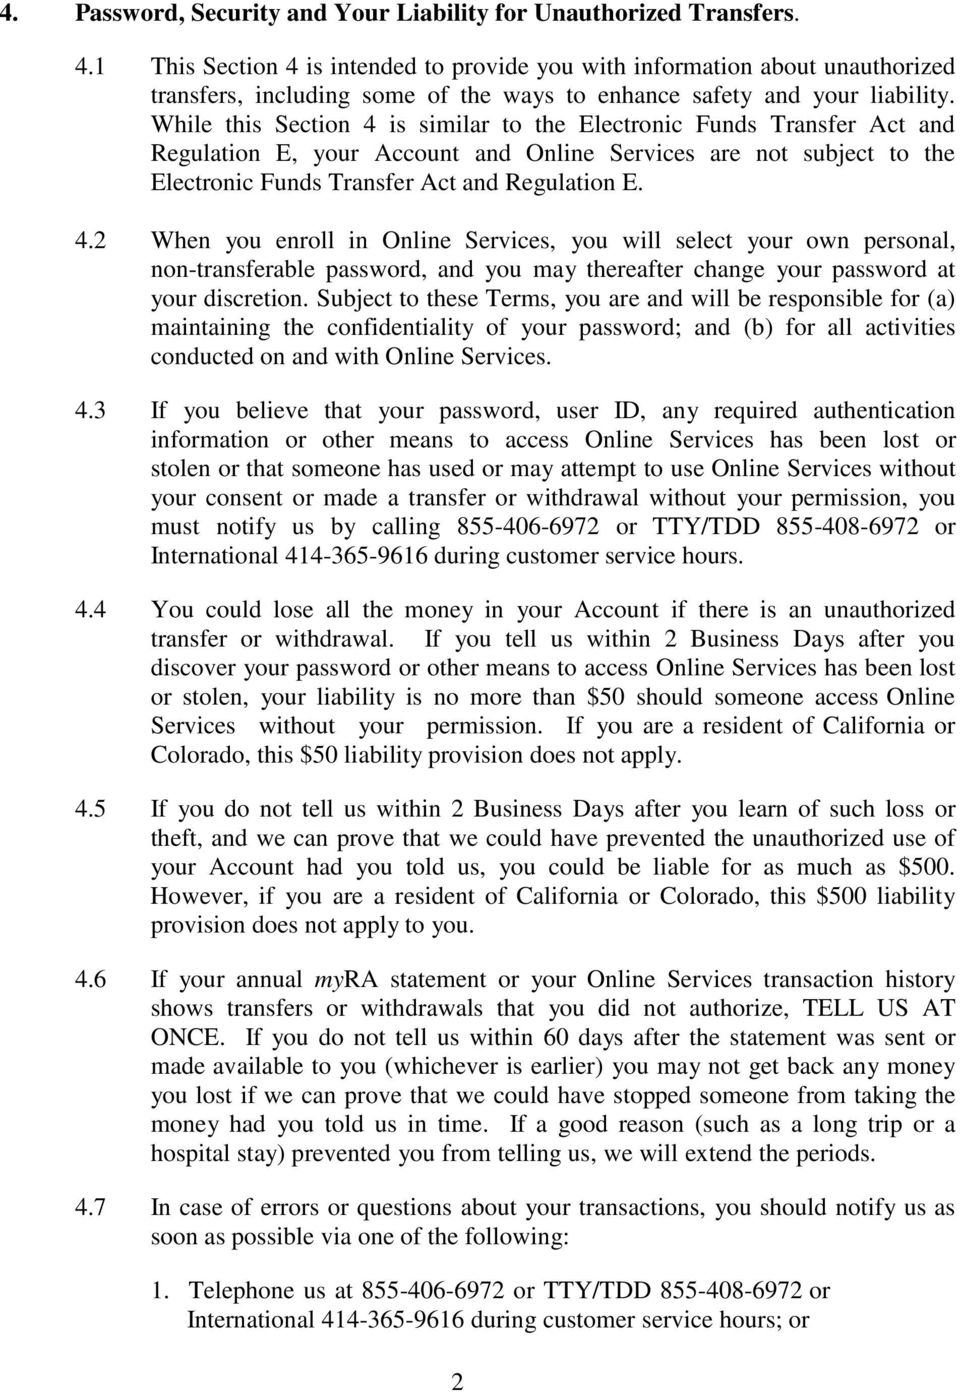 While this Section 4 is similar to the Electronic Funds Transfer Act and Regulation E, your Account and Online Services are not subject to the Electronic Funds Transfer Act and Regulation E. 4.2 When you enroll in Online Services, you will select your own personal, non-transferable password, and you may thereafter change your password at your discretion.